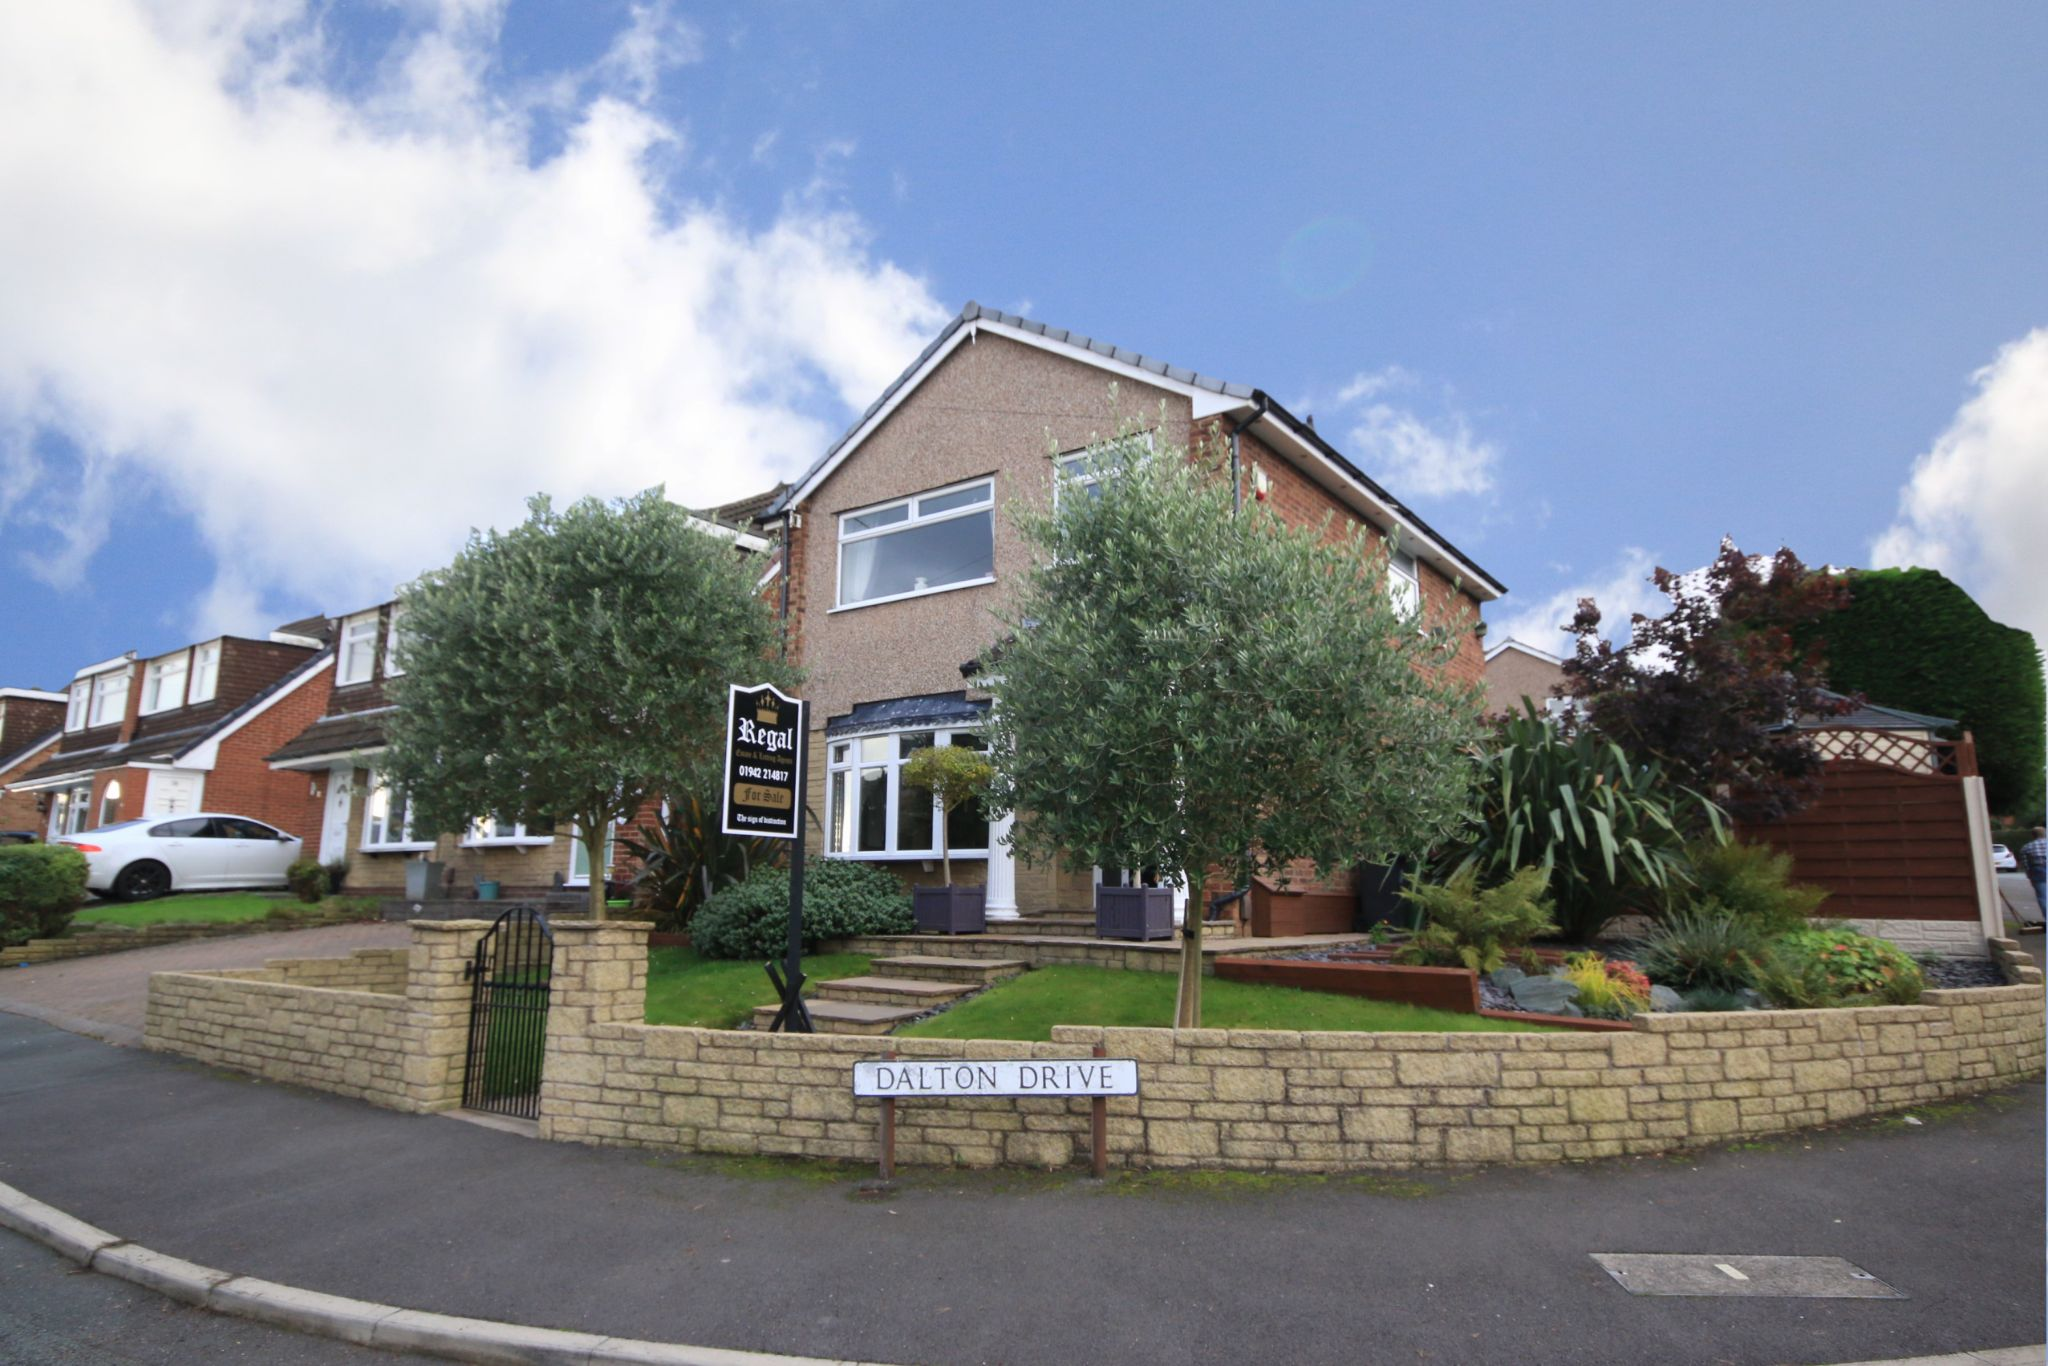 3 bedroom detached house For Sale in Wigan - Photograph 1.